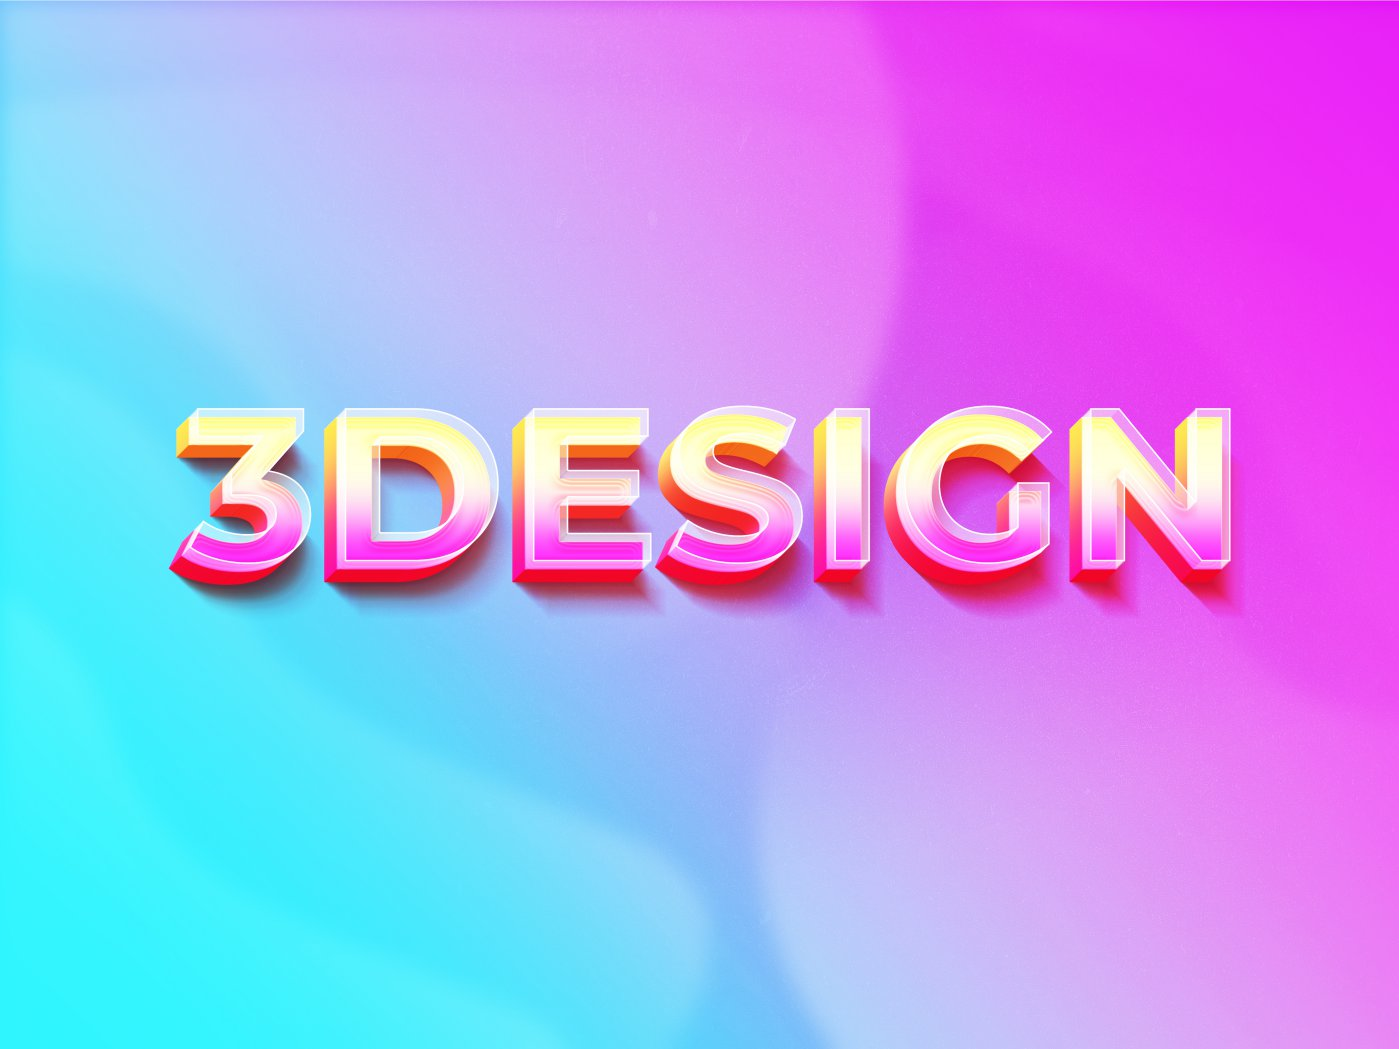 Glossy 3D Text Effect psd